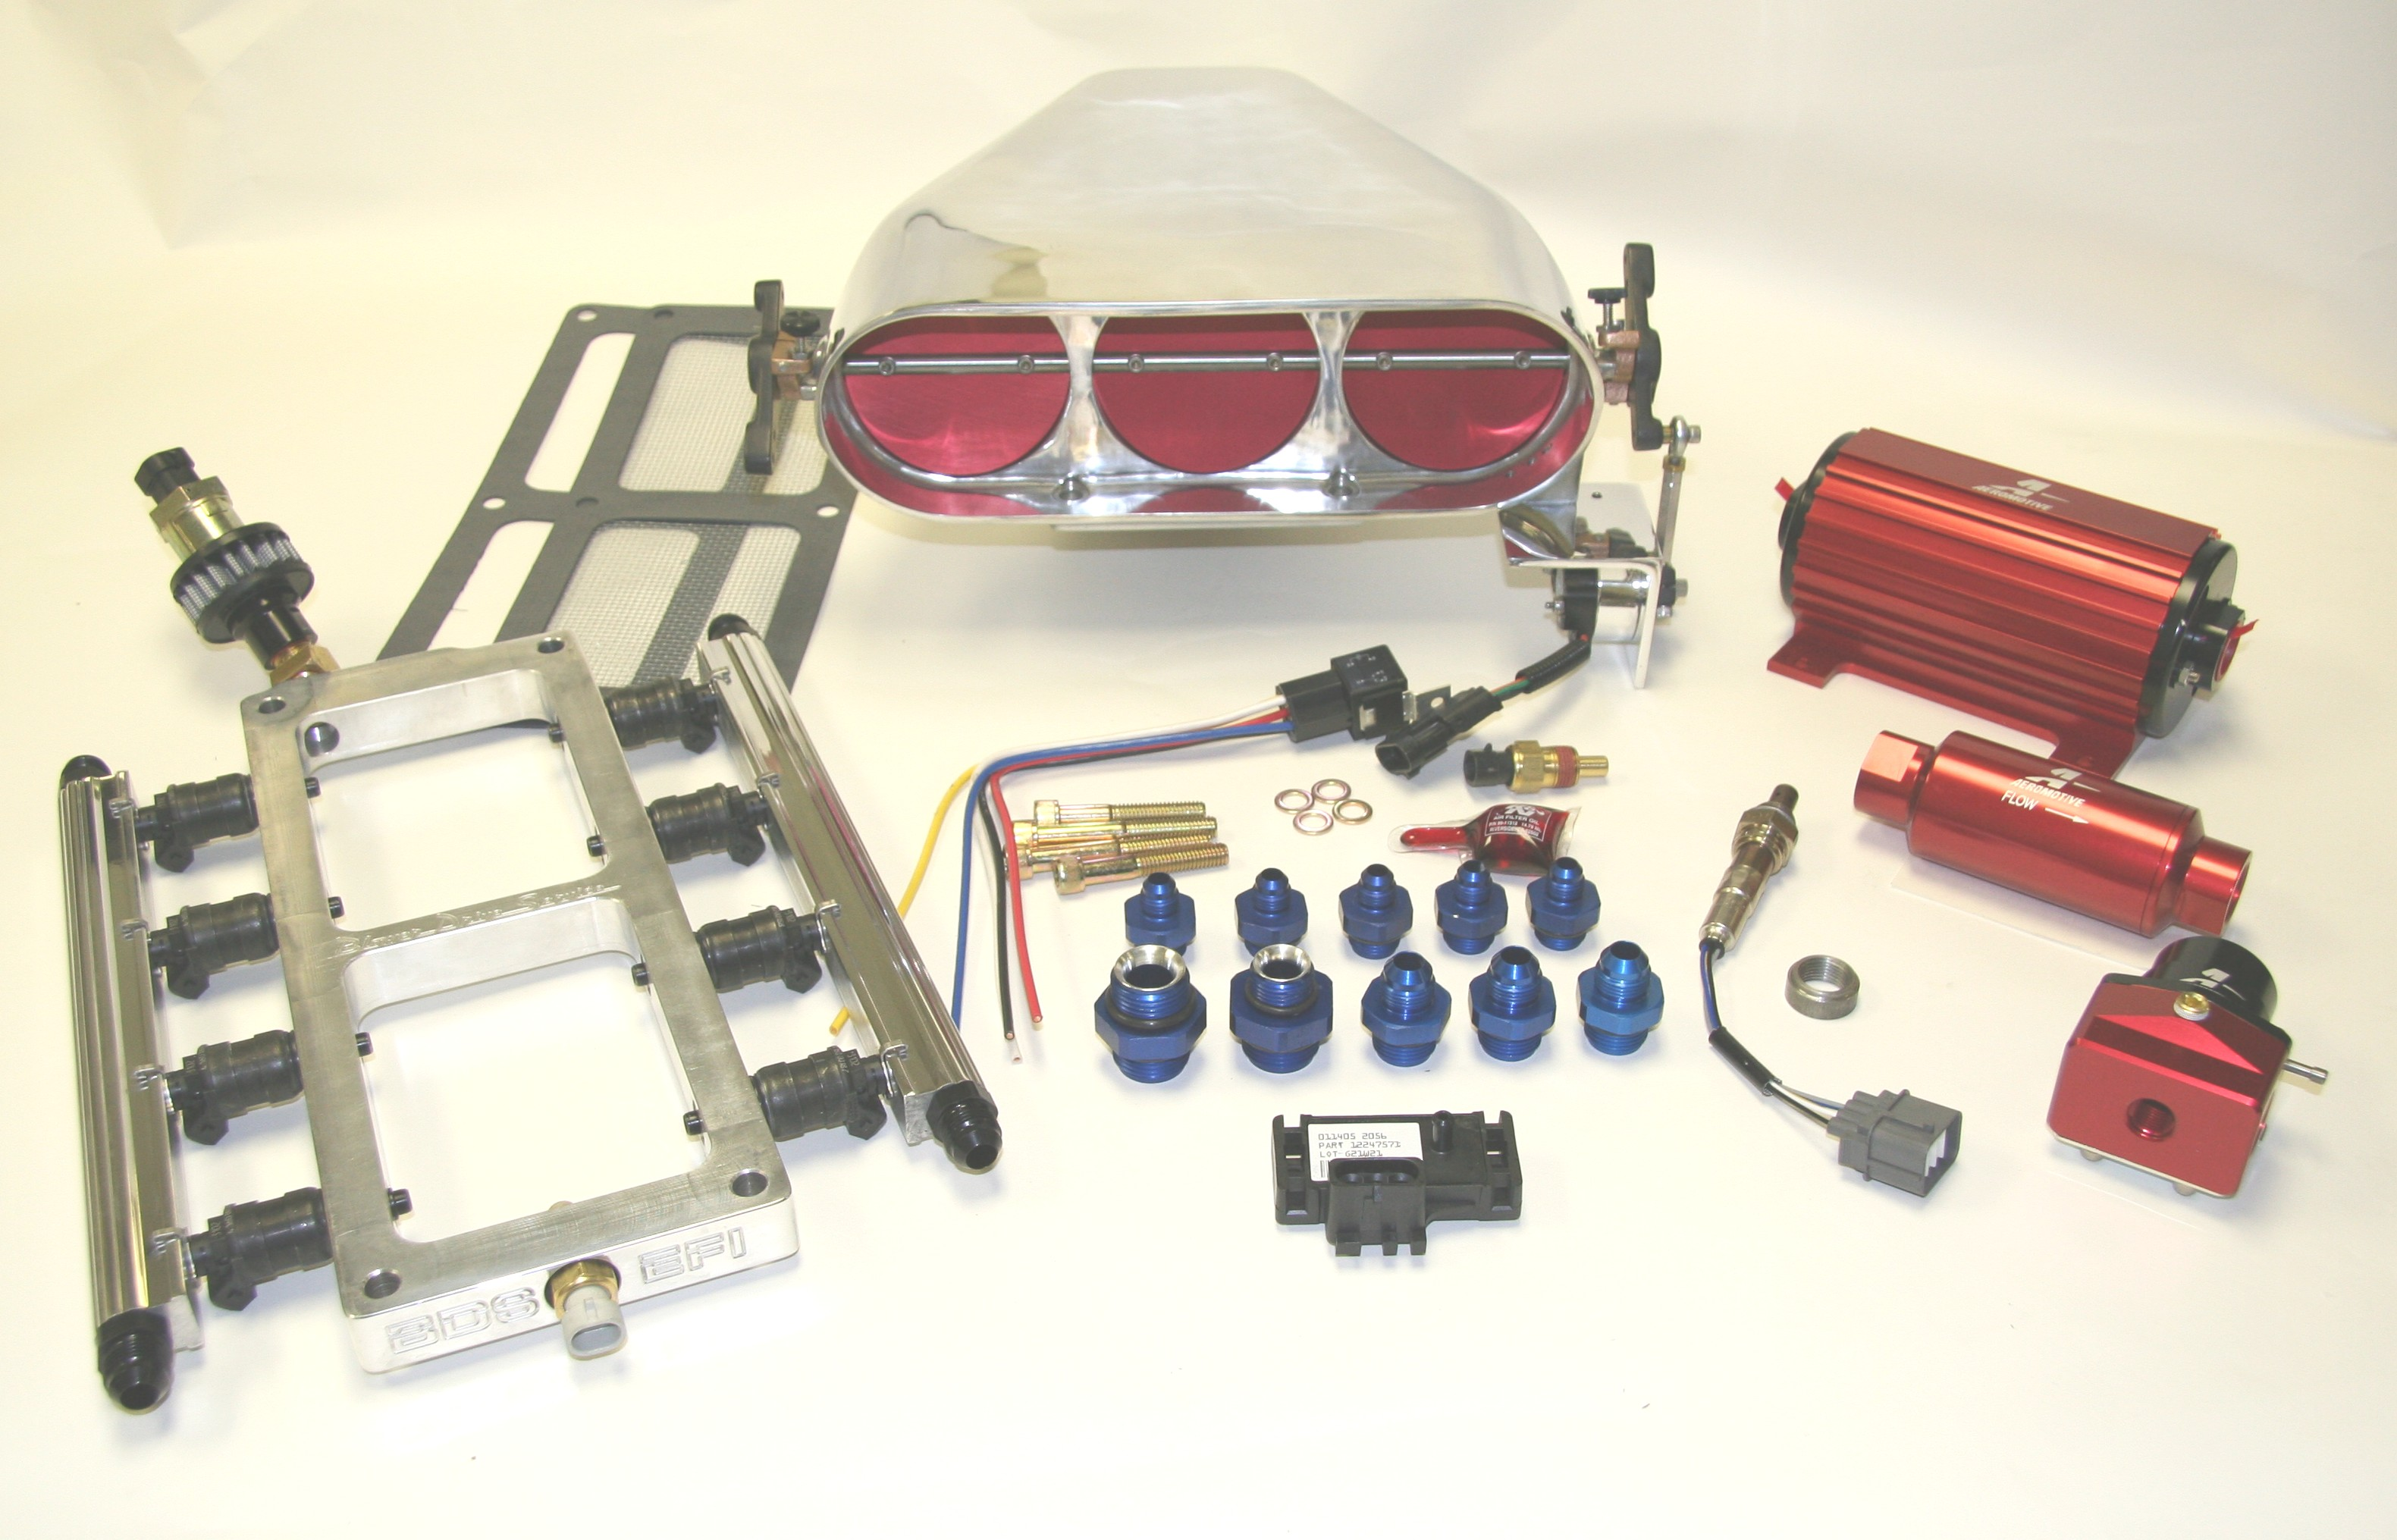 Fuel Systems For Blowers : Roots blowers blower kits drive intakes